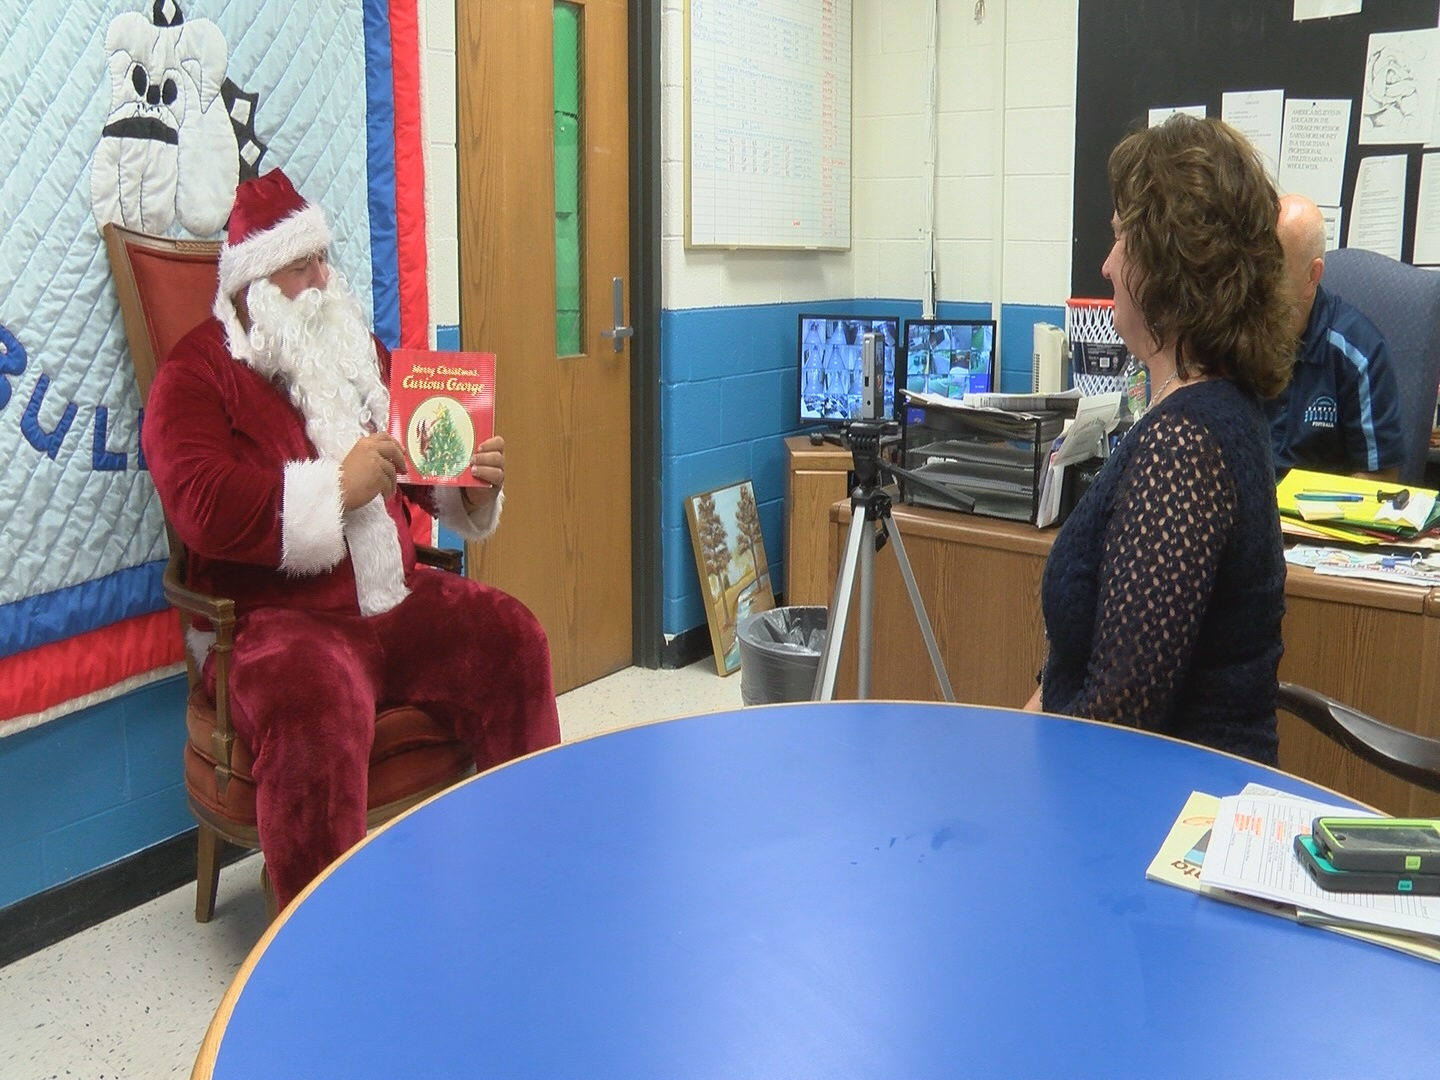 Hampton elementary math teacher Jake Jenkins dressed up as Santa Claus reads a Christmas story about Curious George.